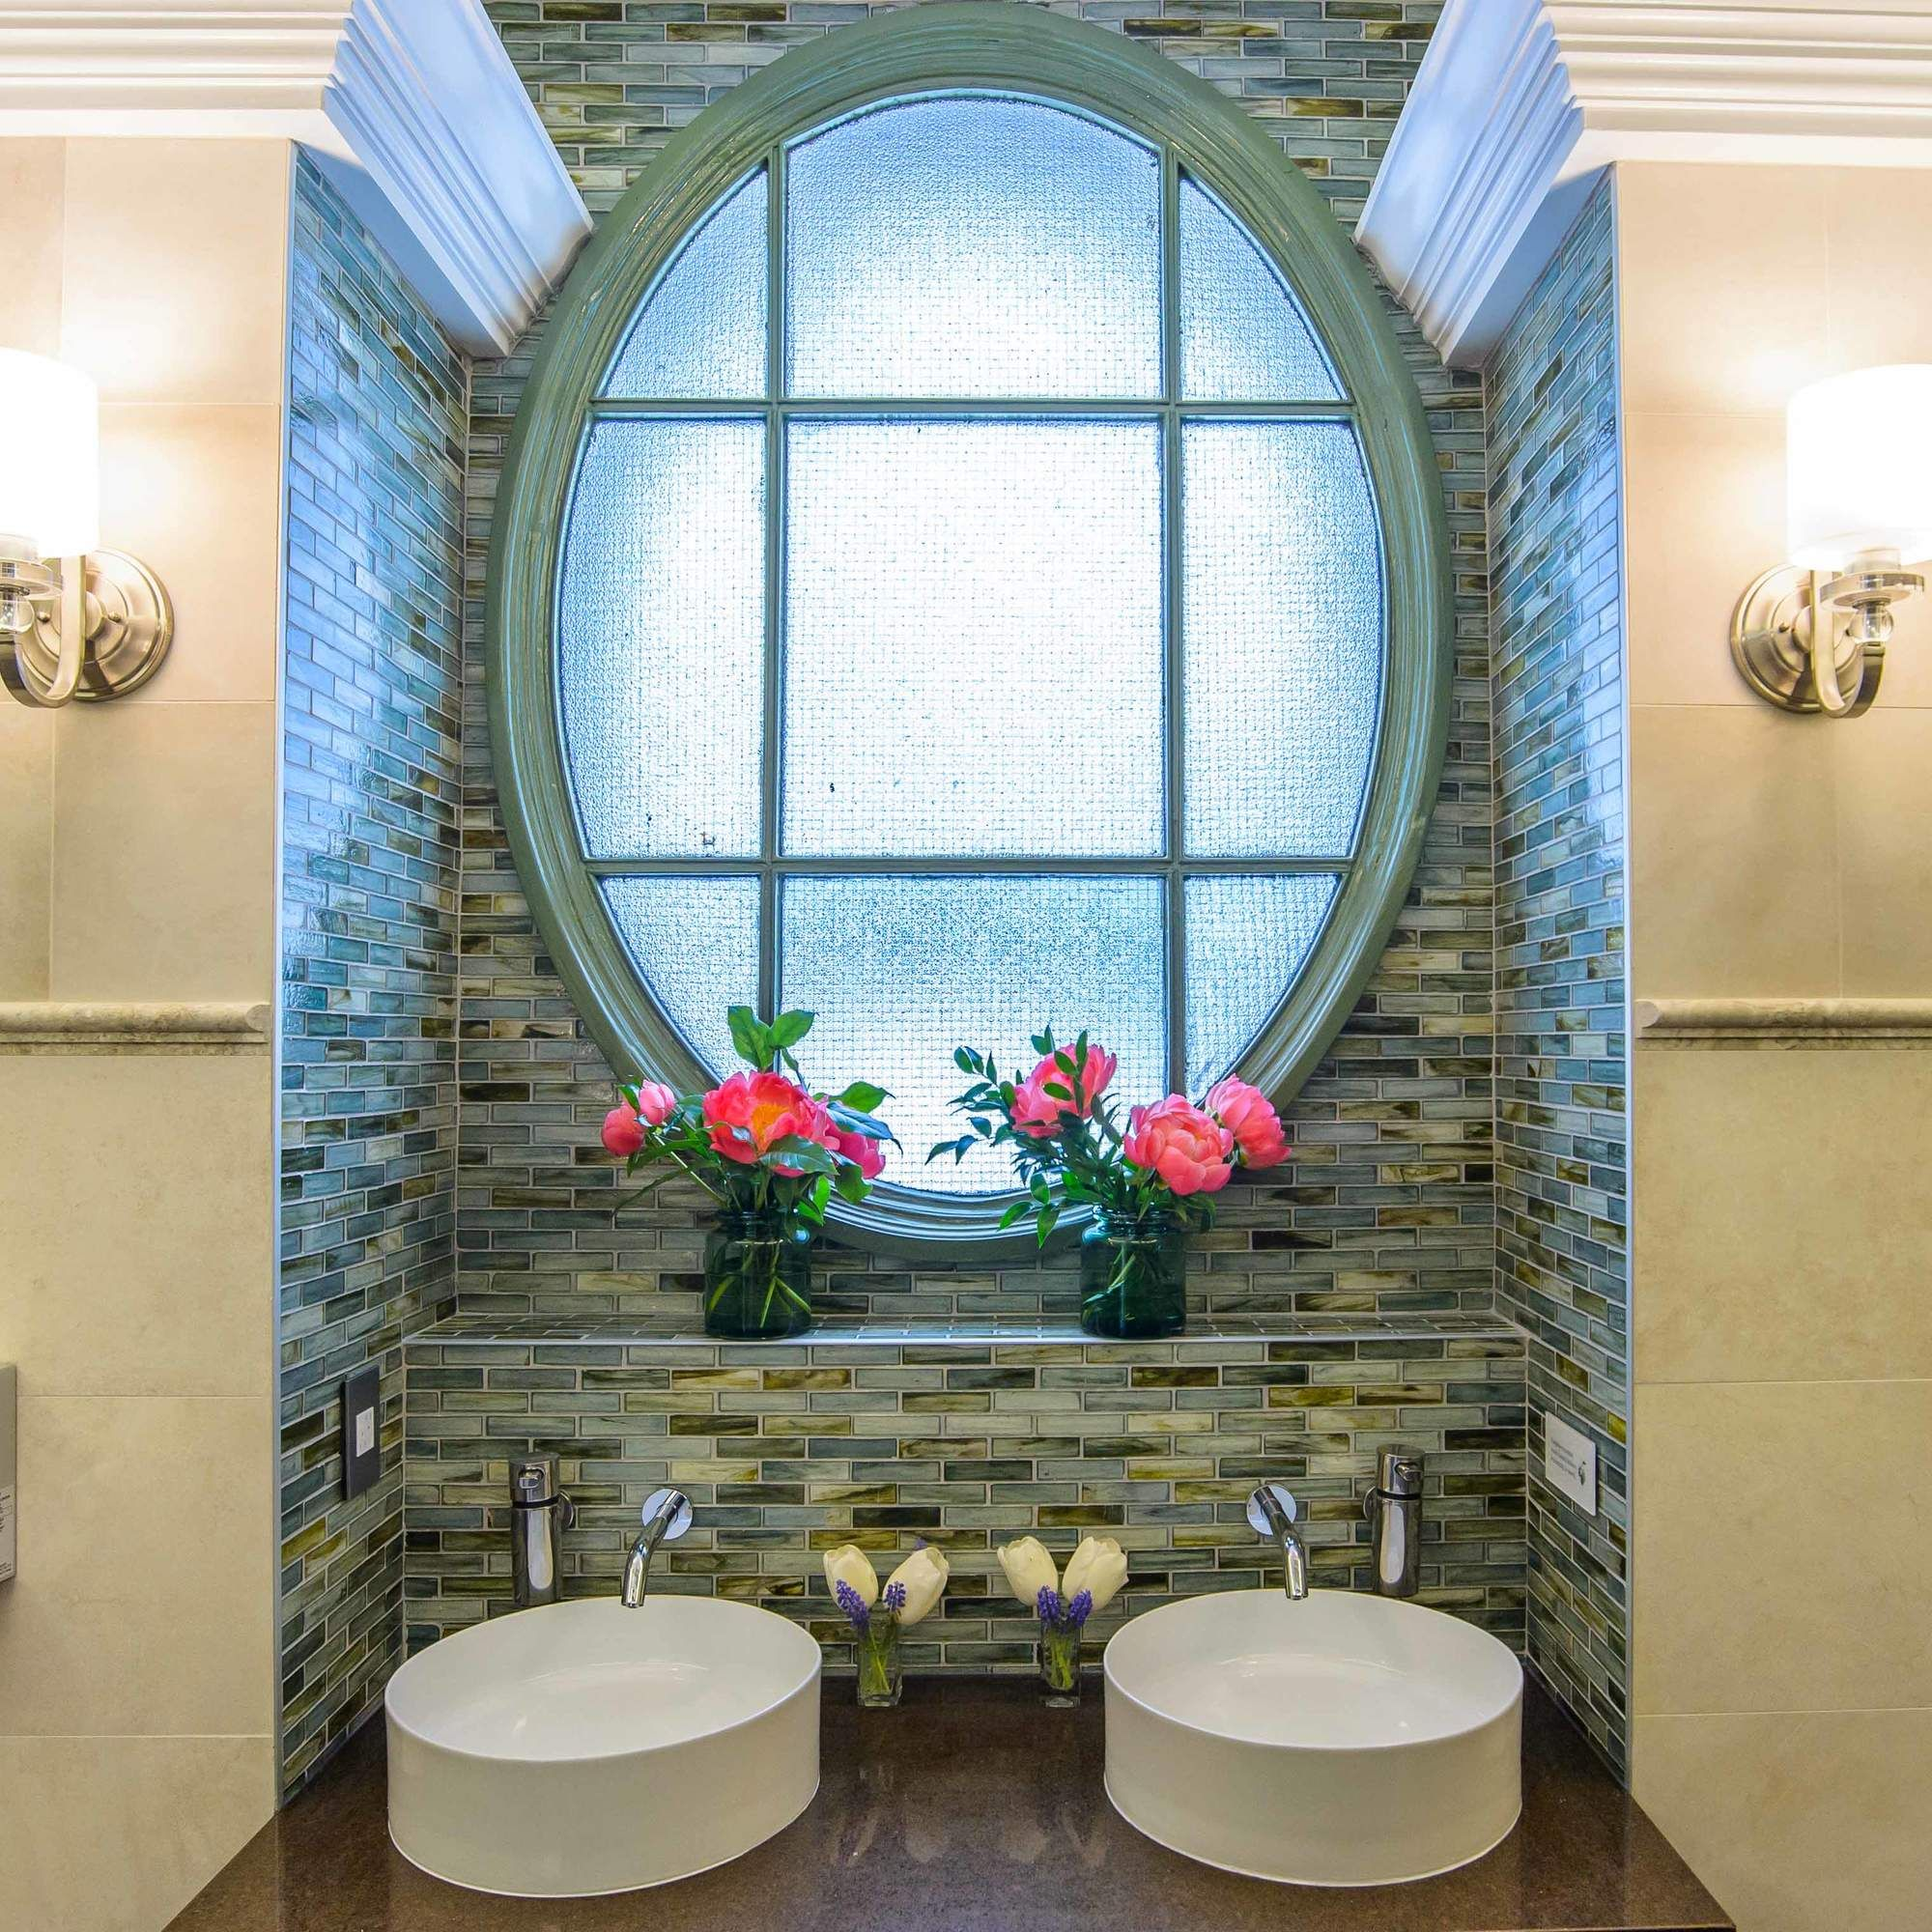 This Is the Nicest Public Bathroom in New York City | Public bathrooms, Round mirror bathroom ...